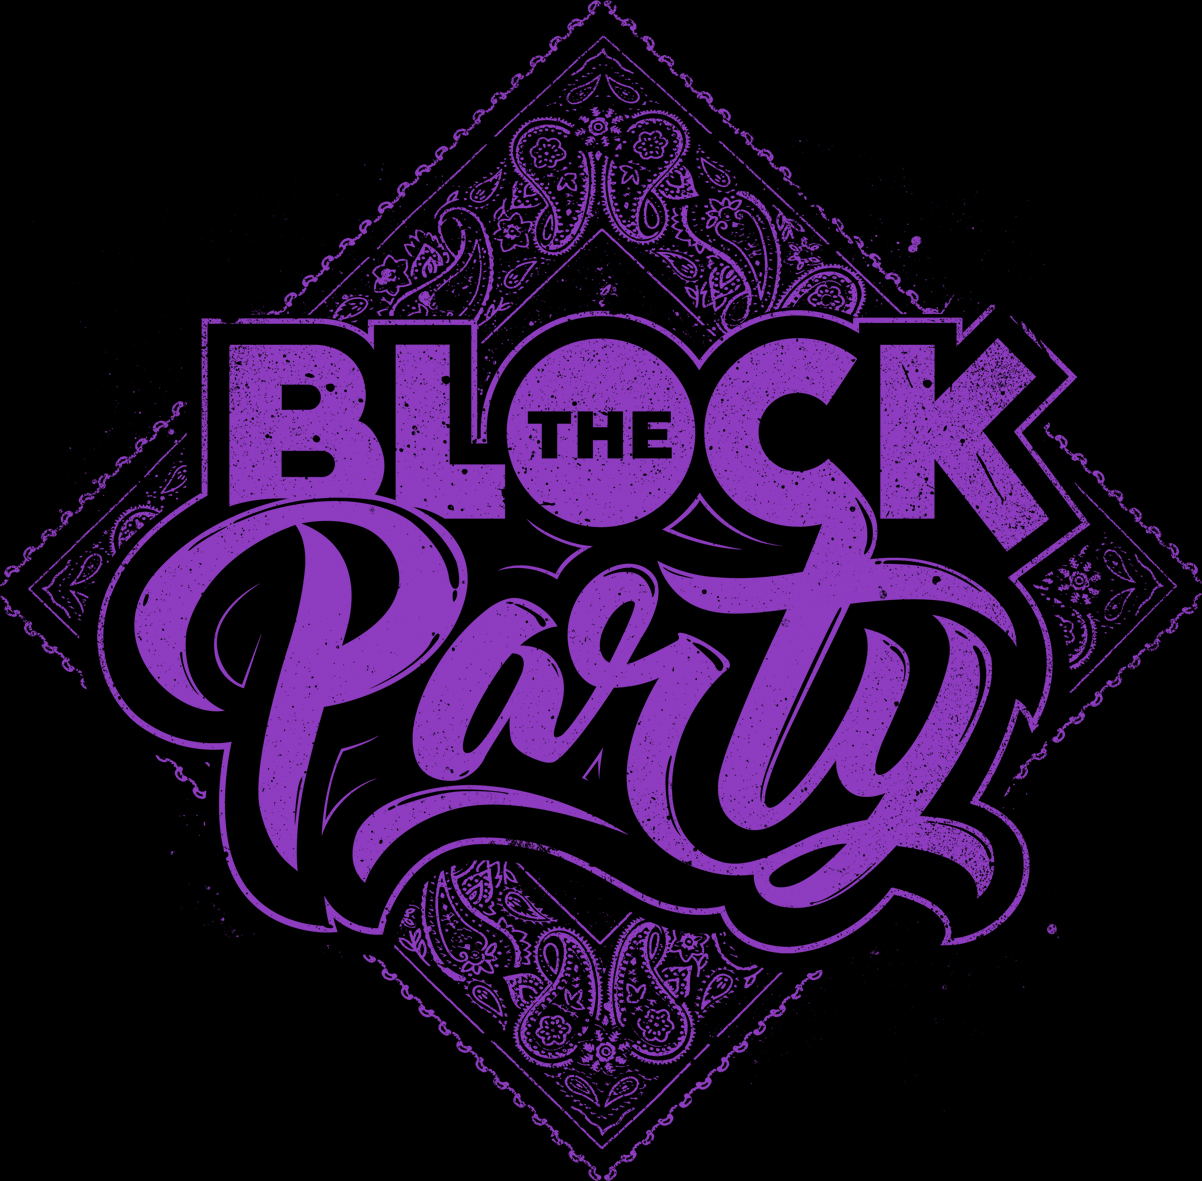 BLOCK PARTY BANDANA TEE.jpg